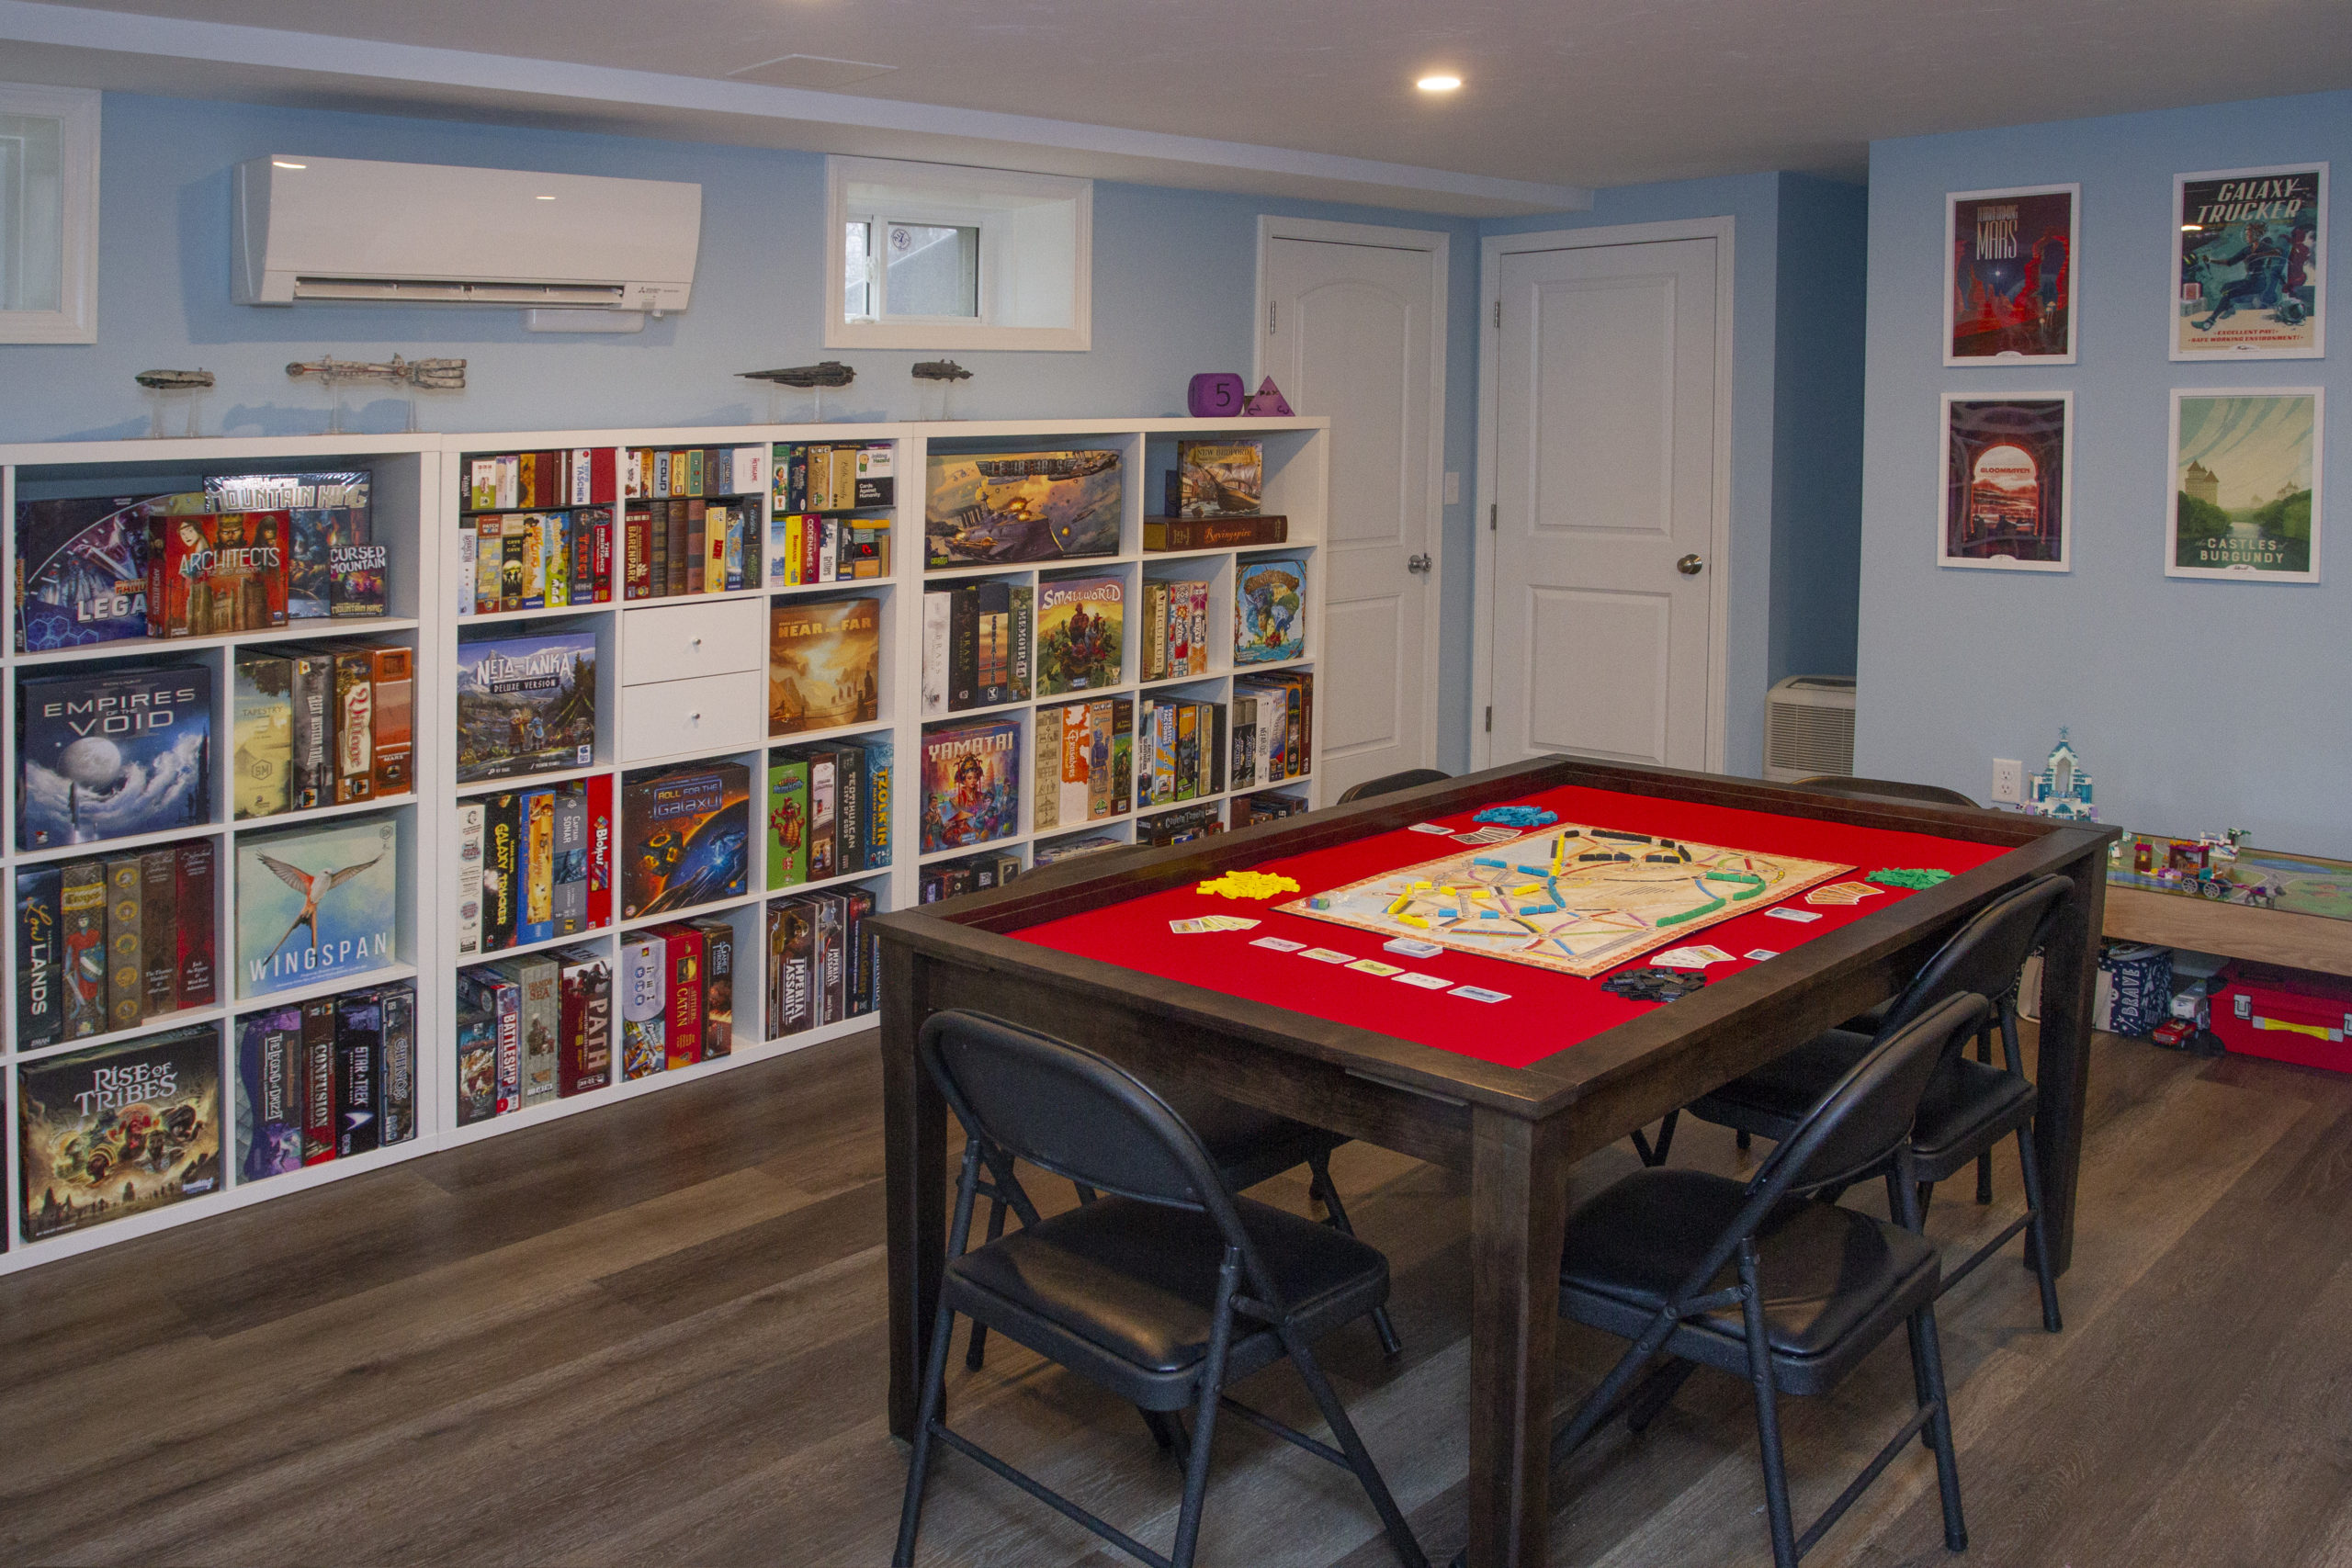 A Basement Renovation For Board Game Enthusiasts J P Hoffman Design Build Basement Renovations